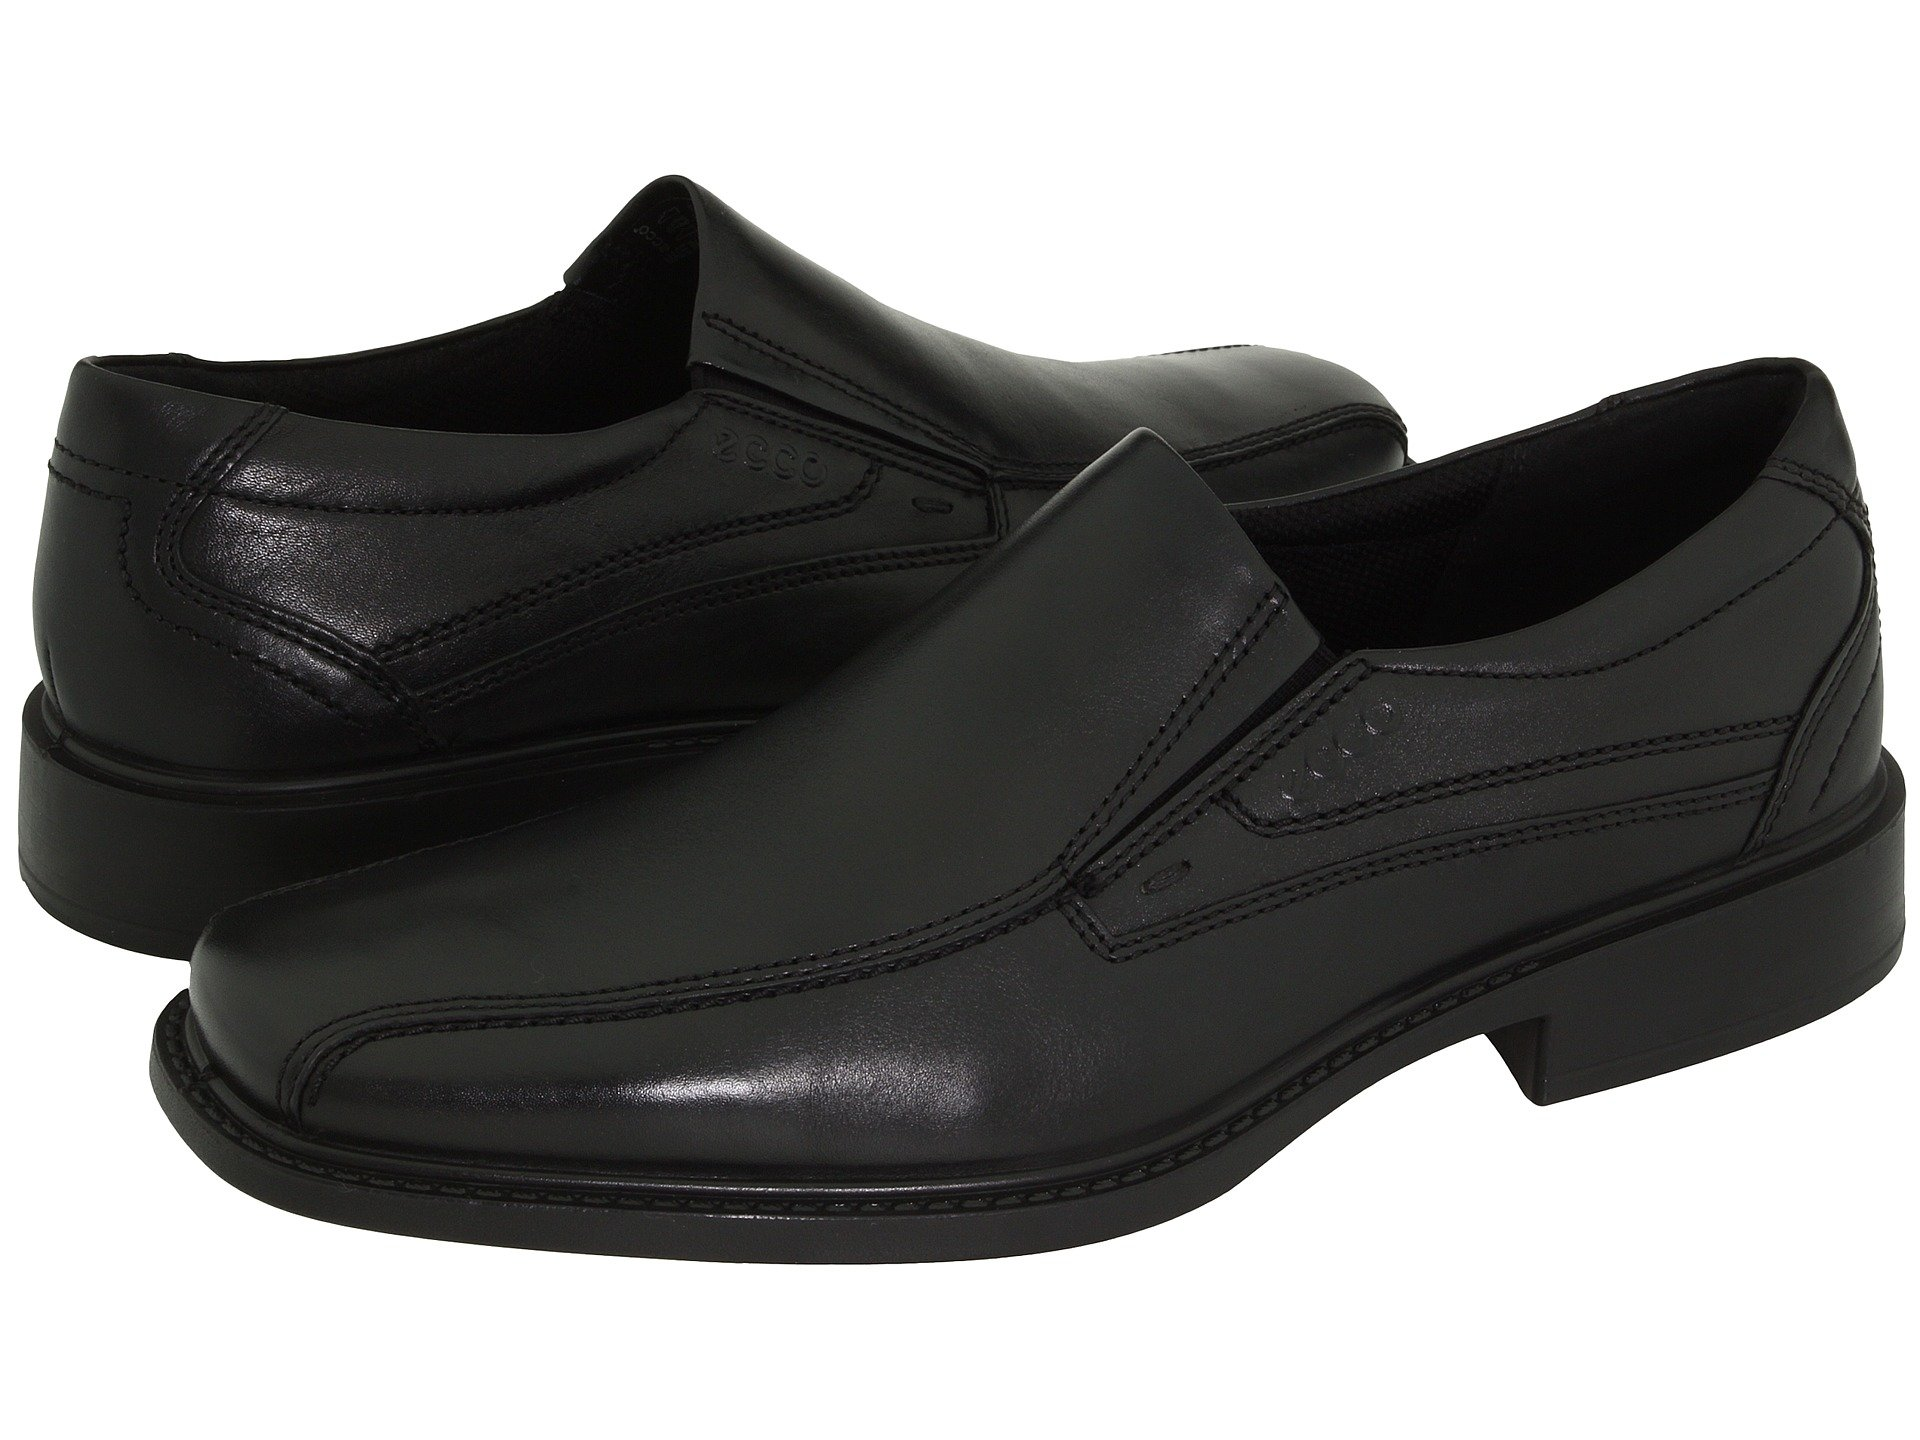 025a6d027275 Men s ECCO Loafers + FREE SHIPPING